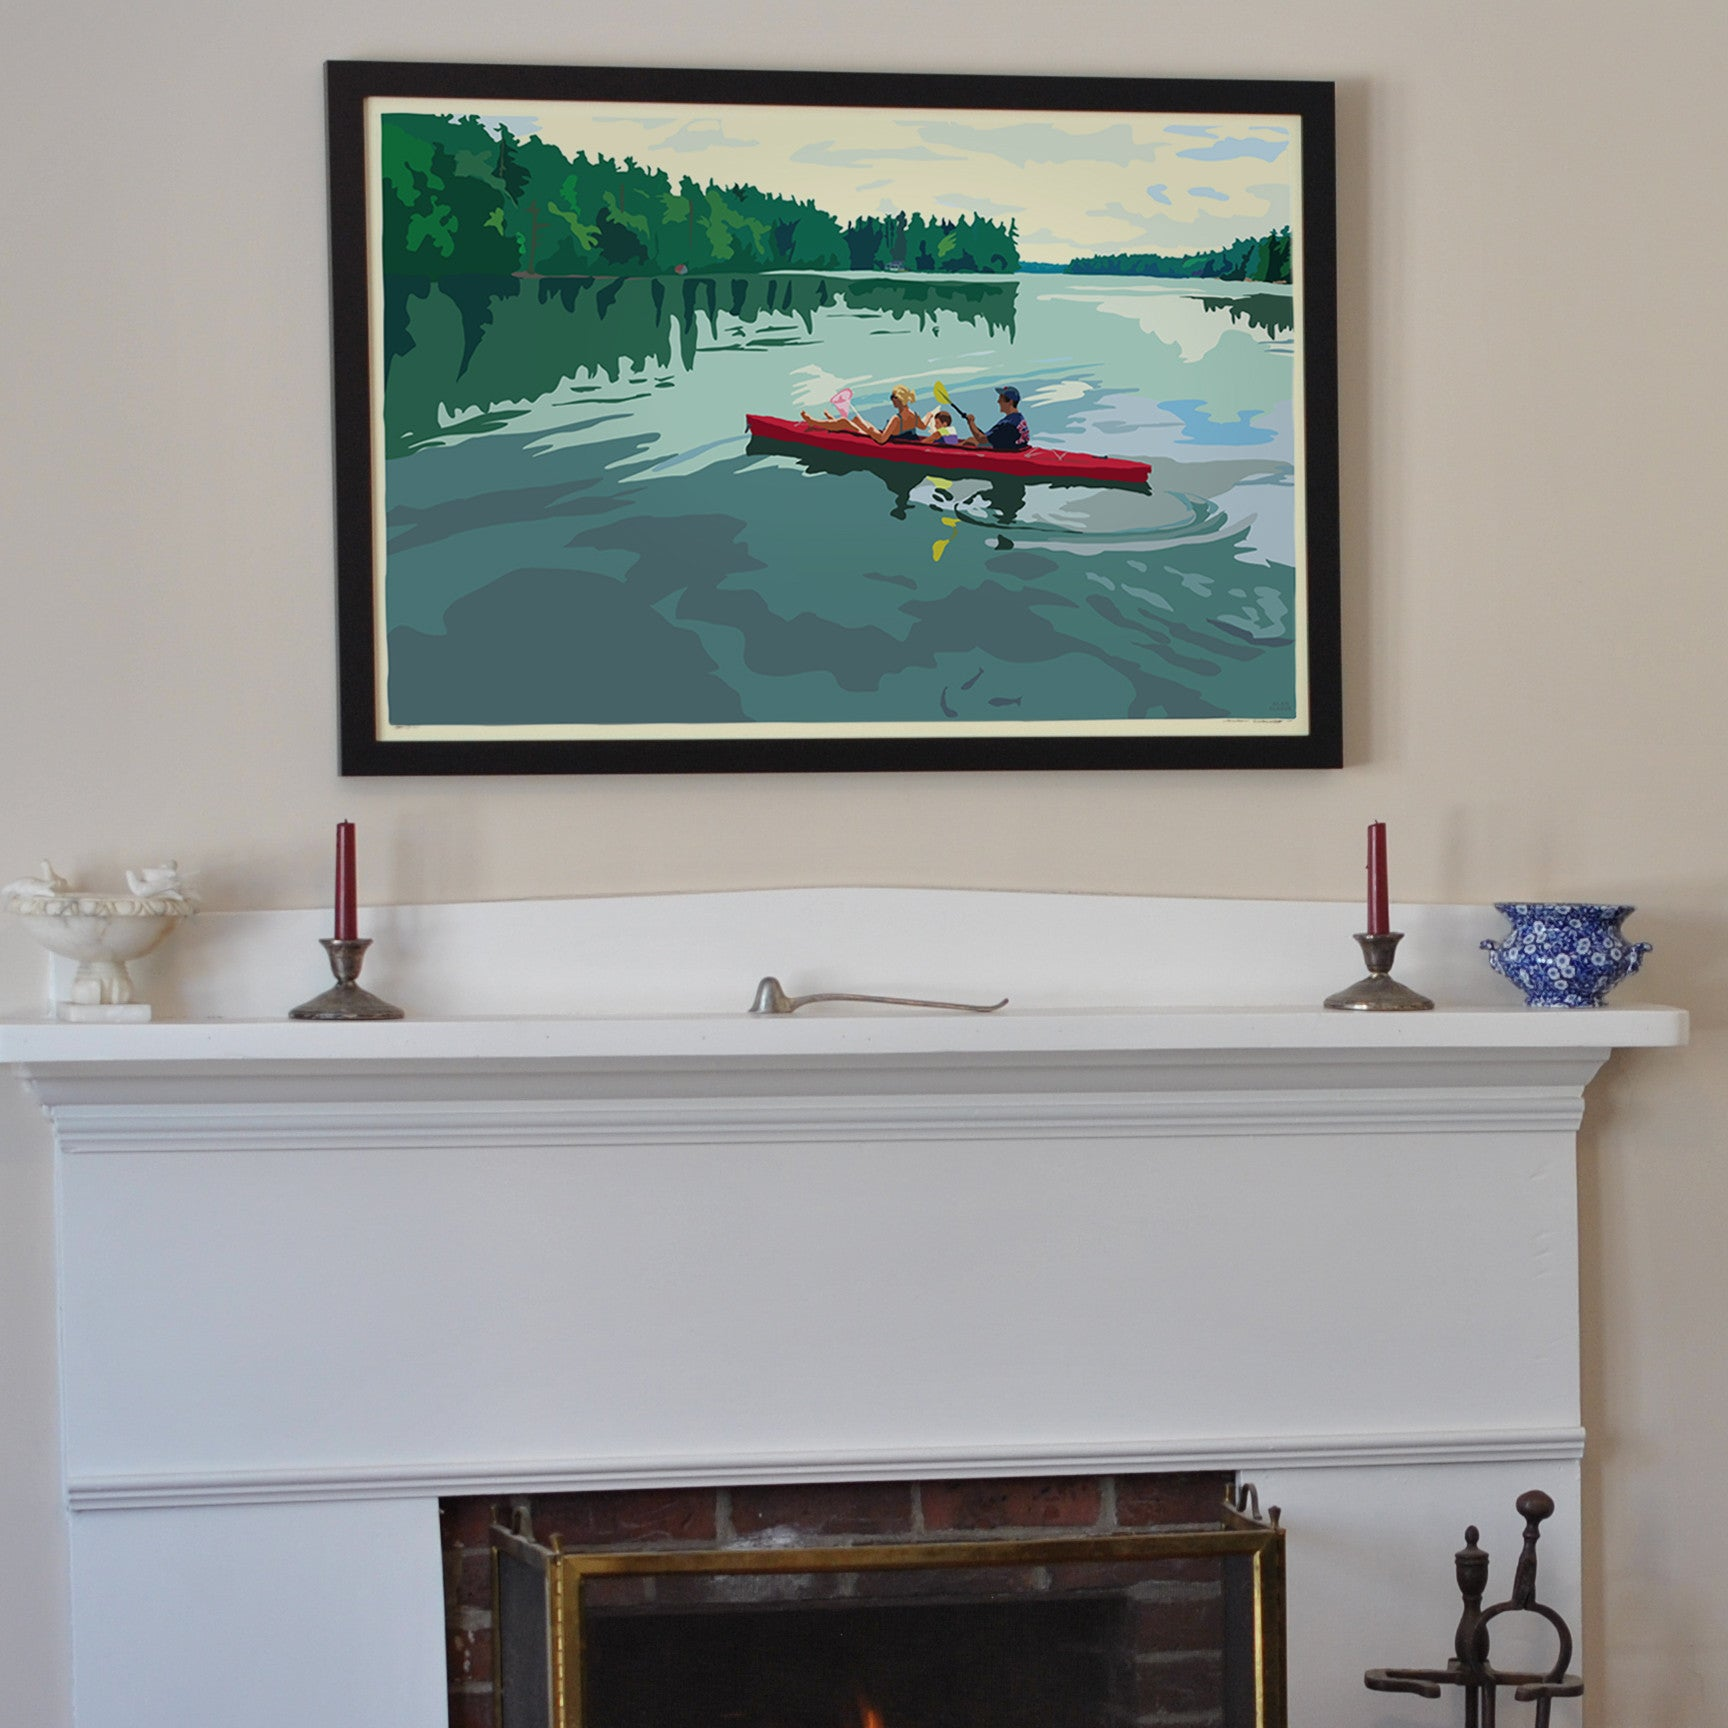 "Kayaking On A Lake Art Print 24"" x 36"" Framed Travel Poster - Maine"